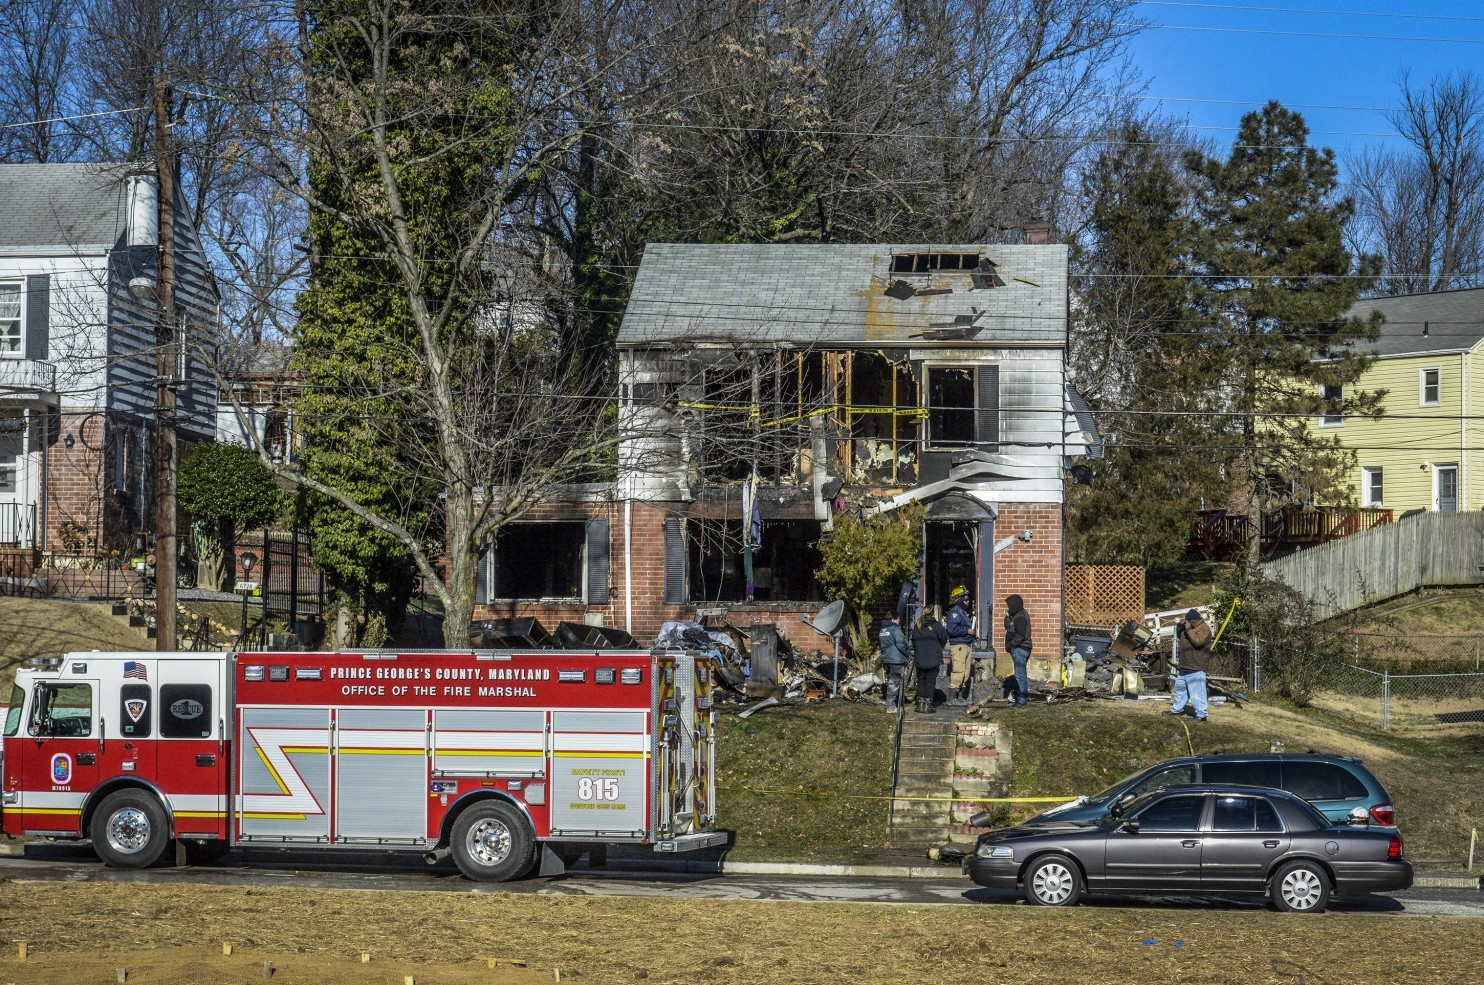 Tragedy as Nigerian family perish in US house fire